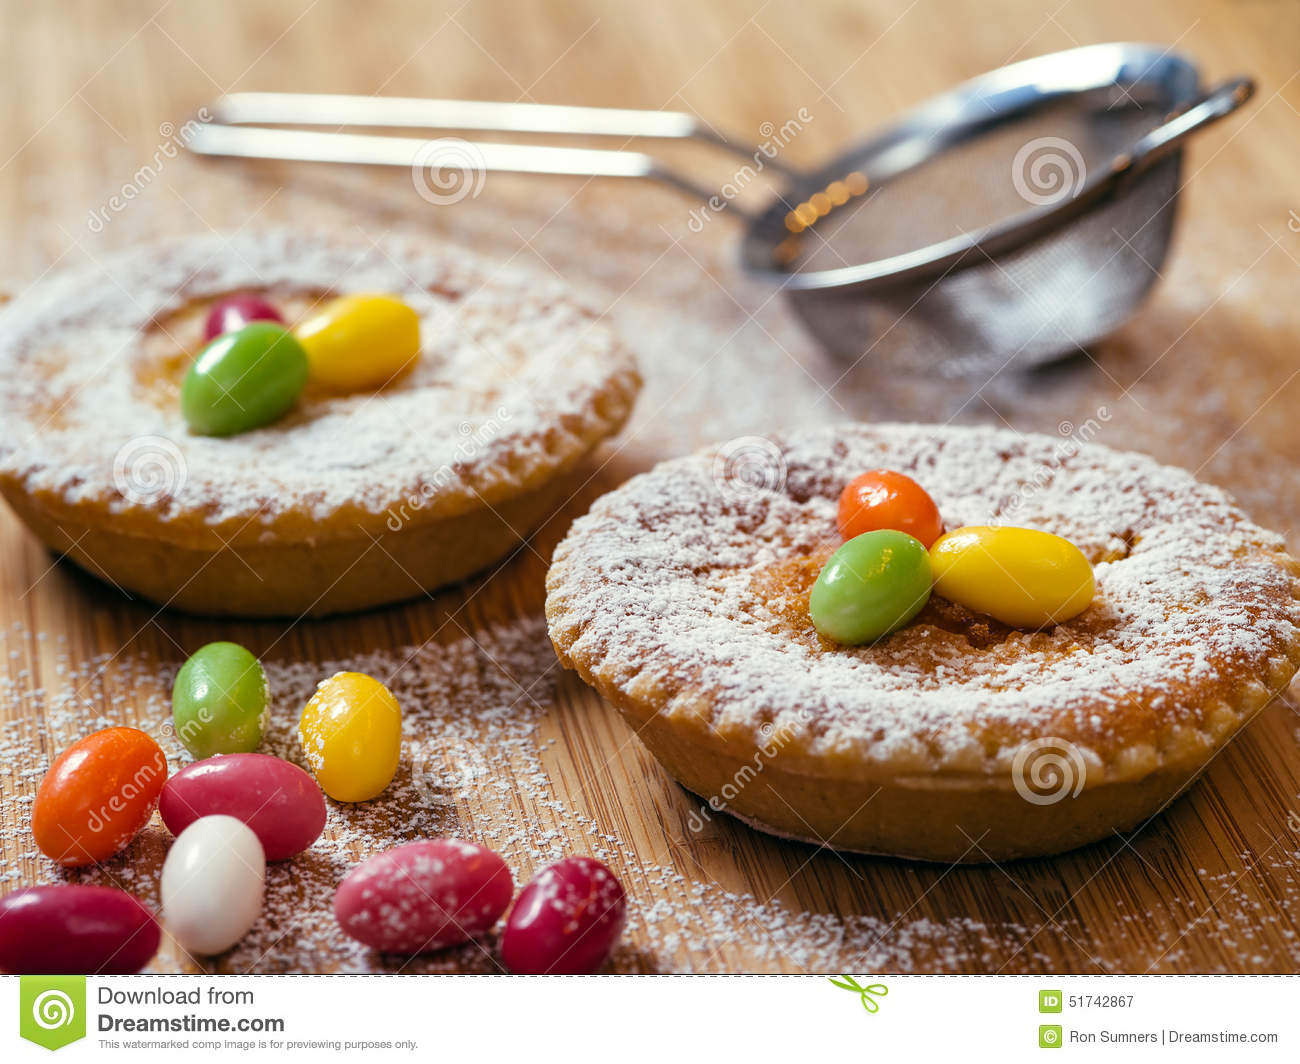 Photo of Oesterchuechli, a traditional Swiss Easter rice tart dessert.